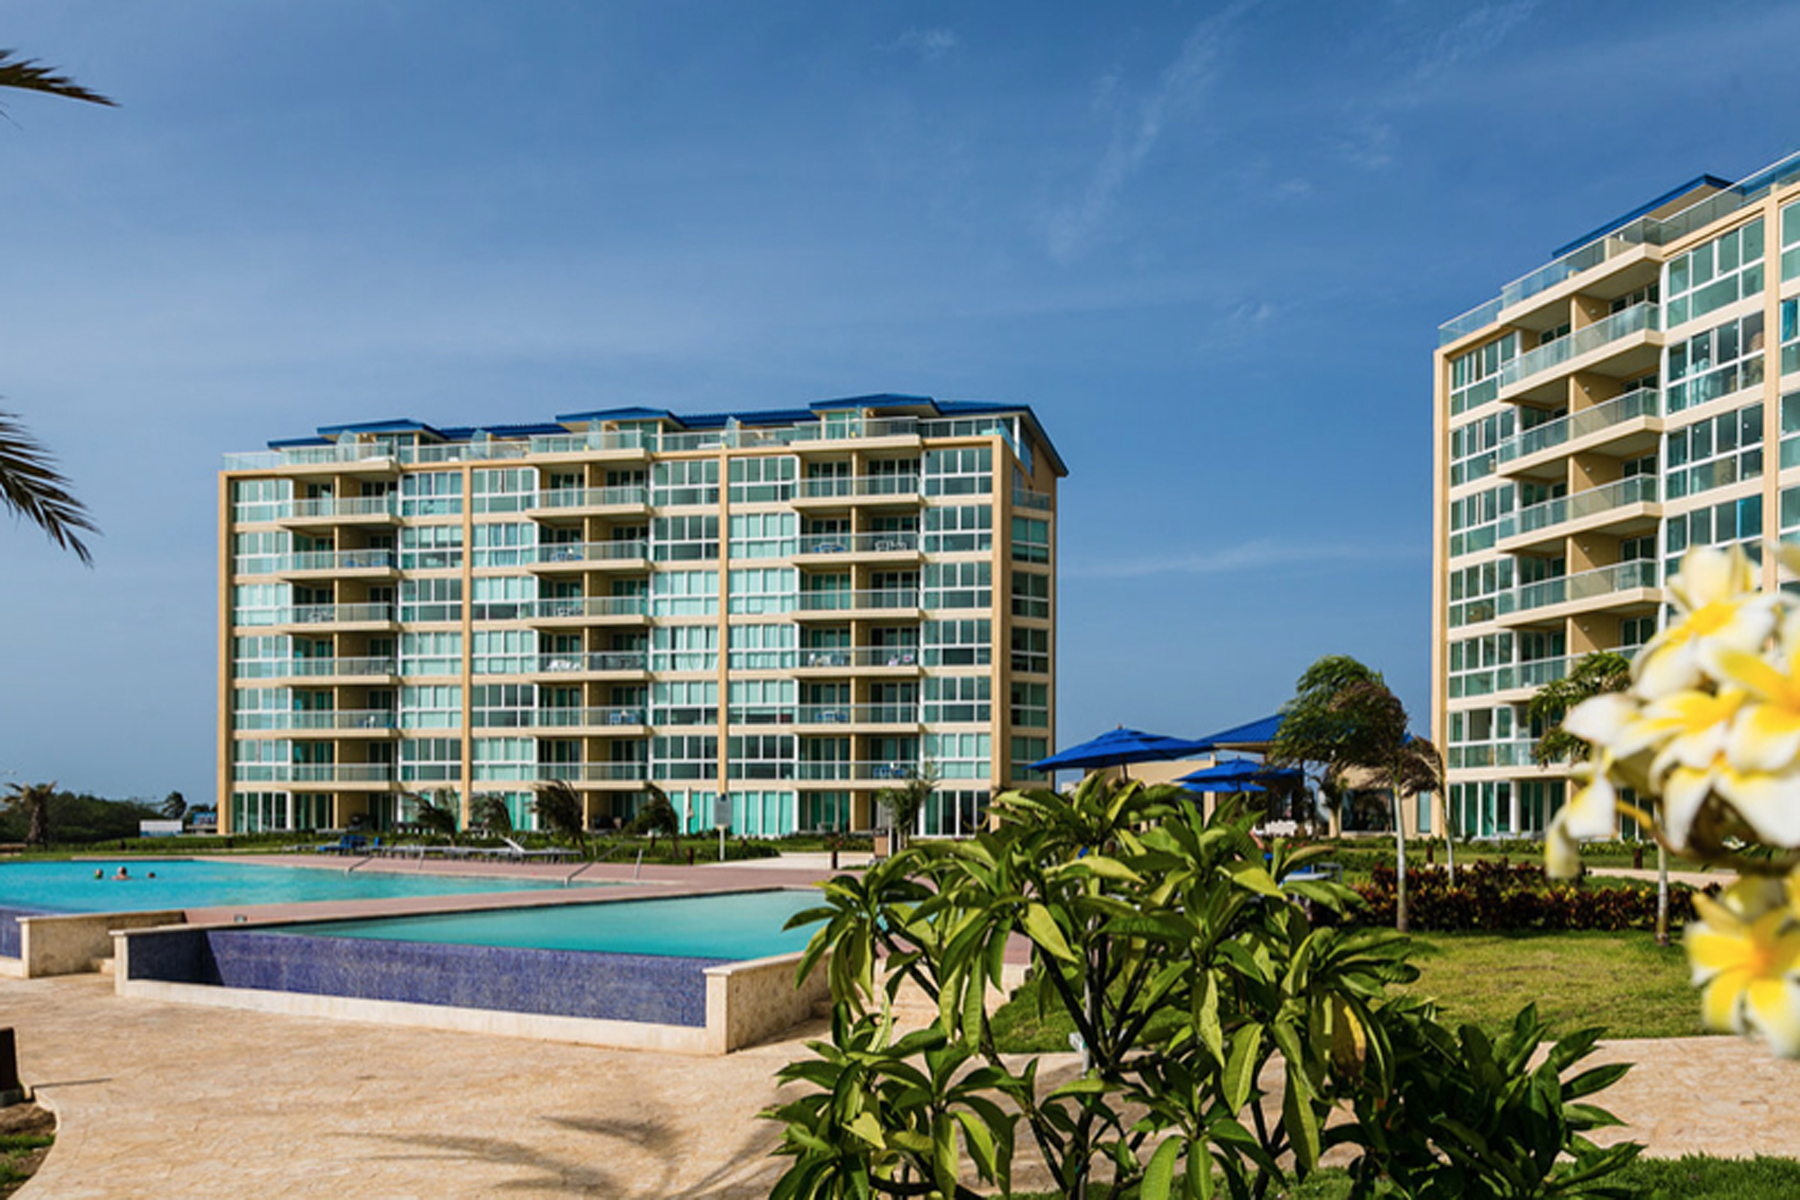 Apartment for Sale at Blue Residence Club, Apartment B #331 Eagle Beach, Aruba